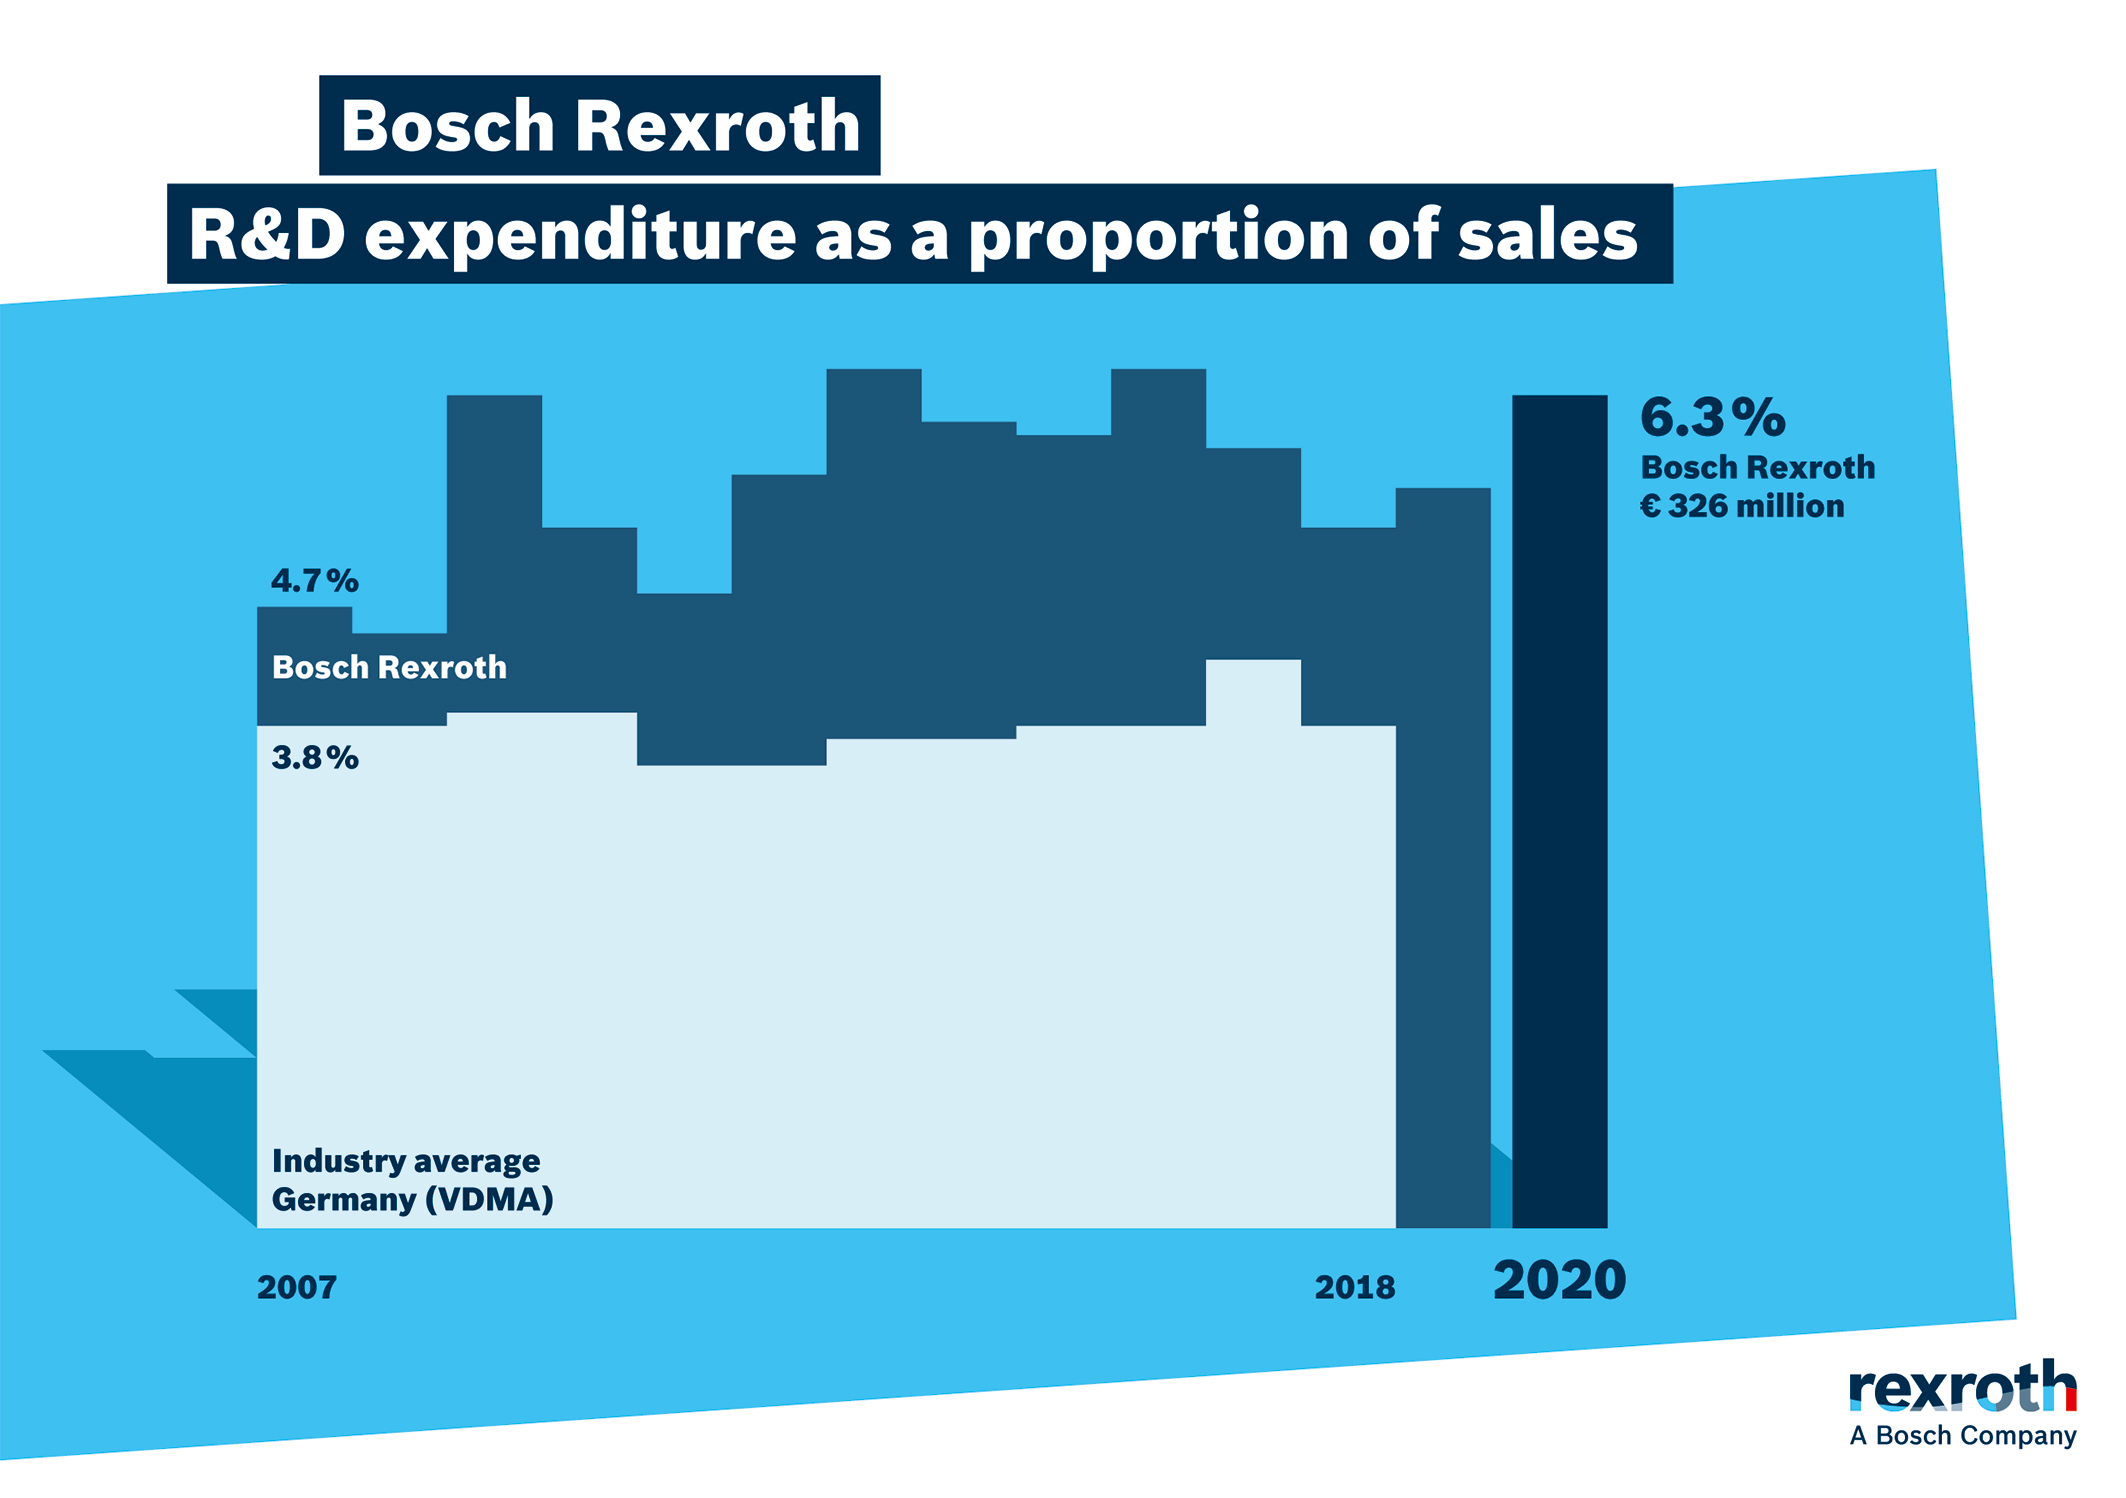 R&D expenditure as a proportion of sales